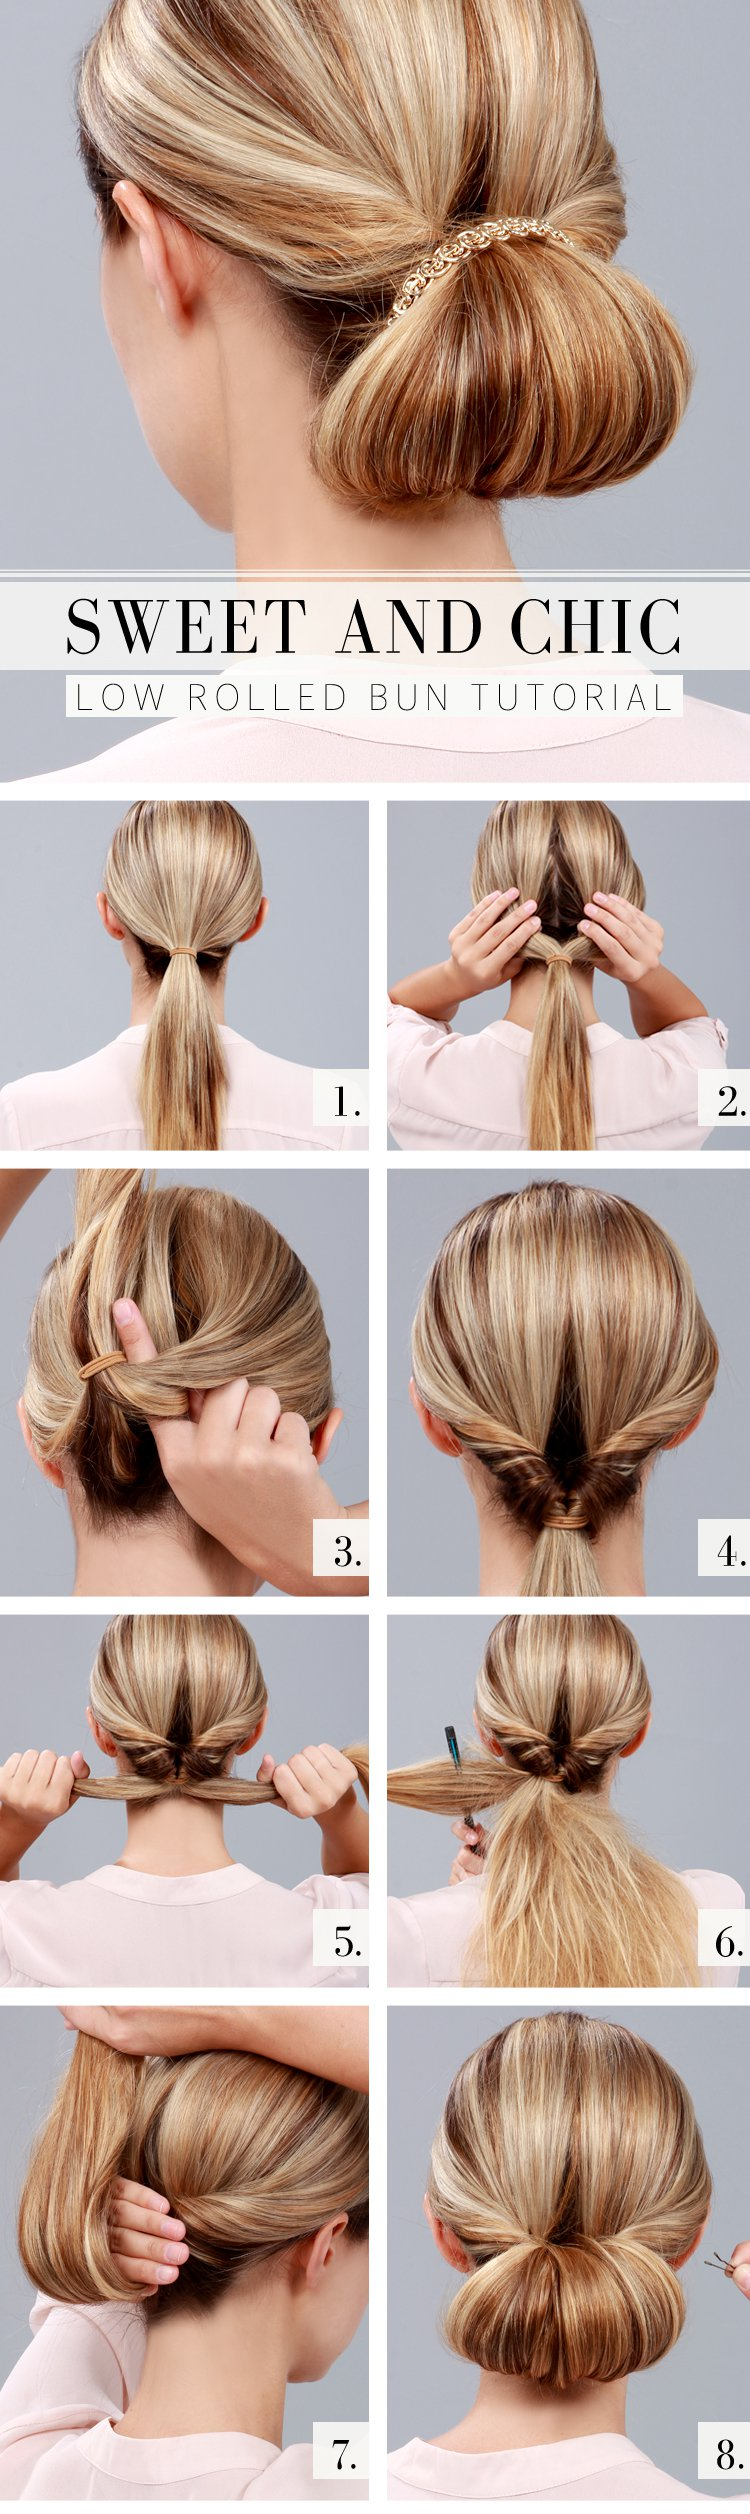 Casual Updos Tutorial: Braided Side Bun Hairstyles pictures